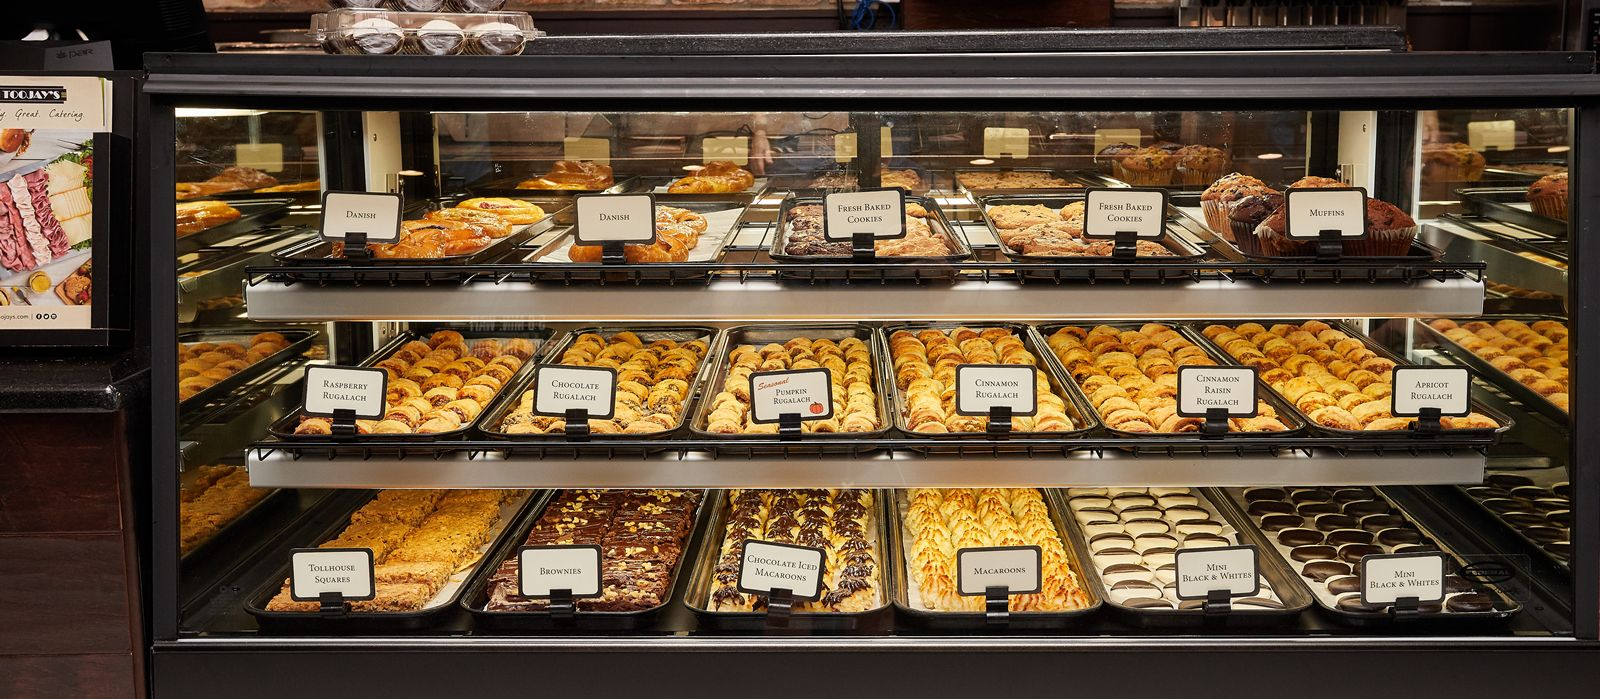 TooJay's Deli Opens in Dania Pointe on Tuesday, July 9